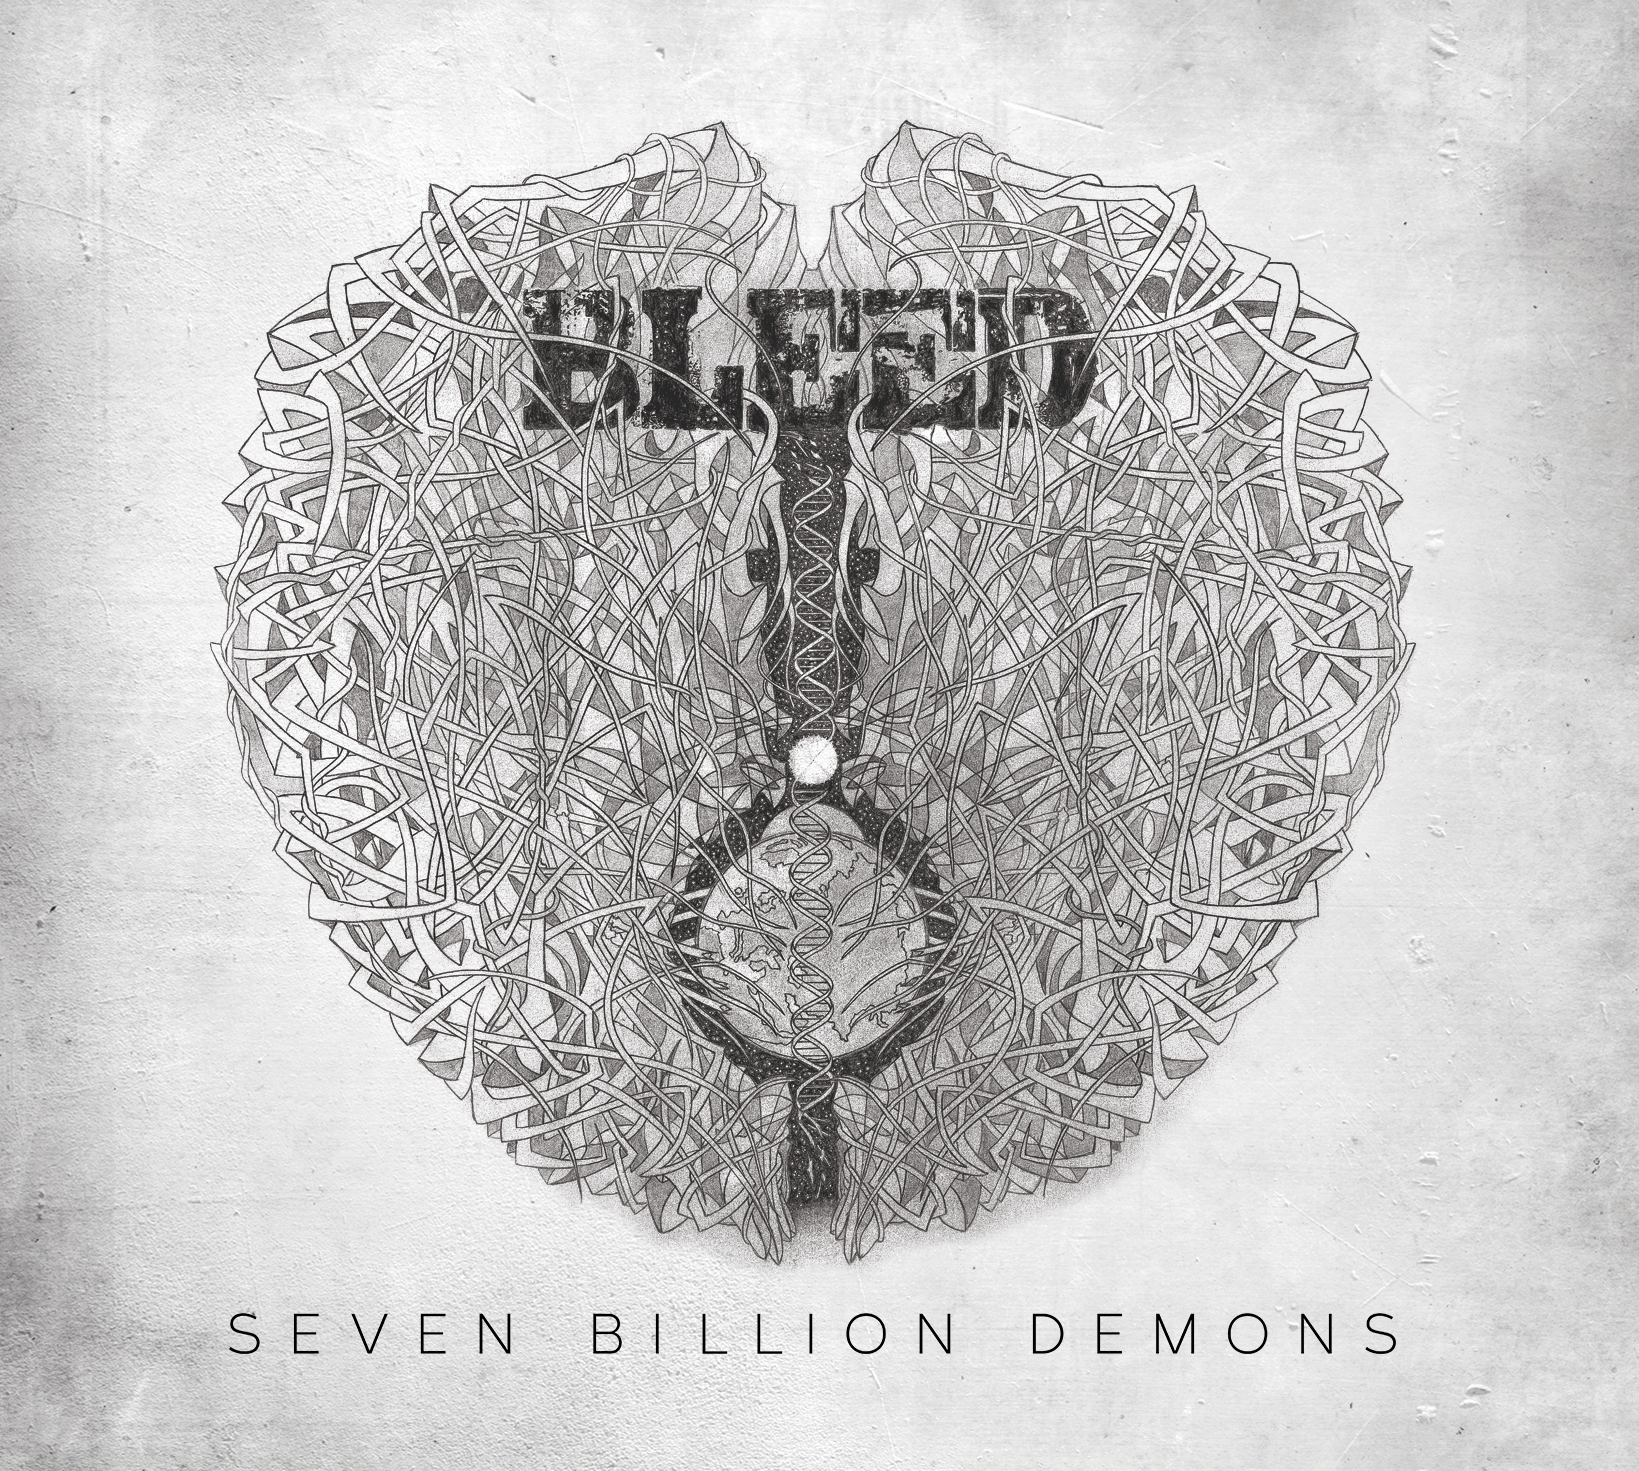 BLEED | Seven Billion Demons (album review) ★★★☆☆